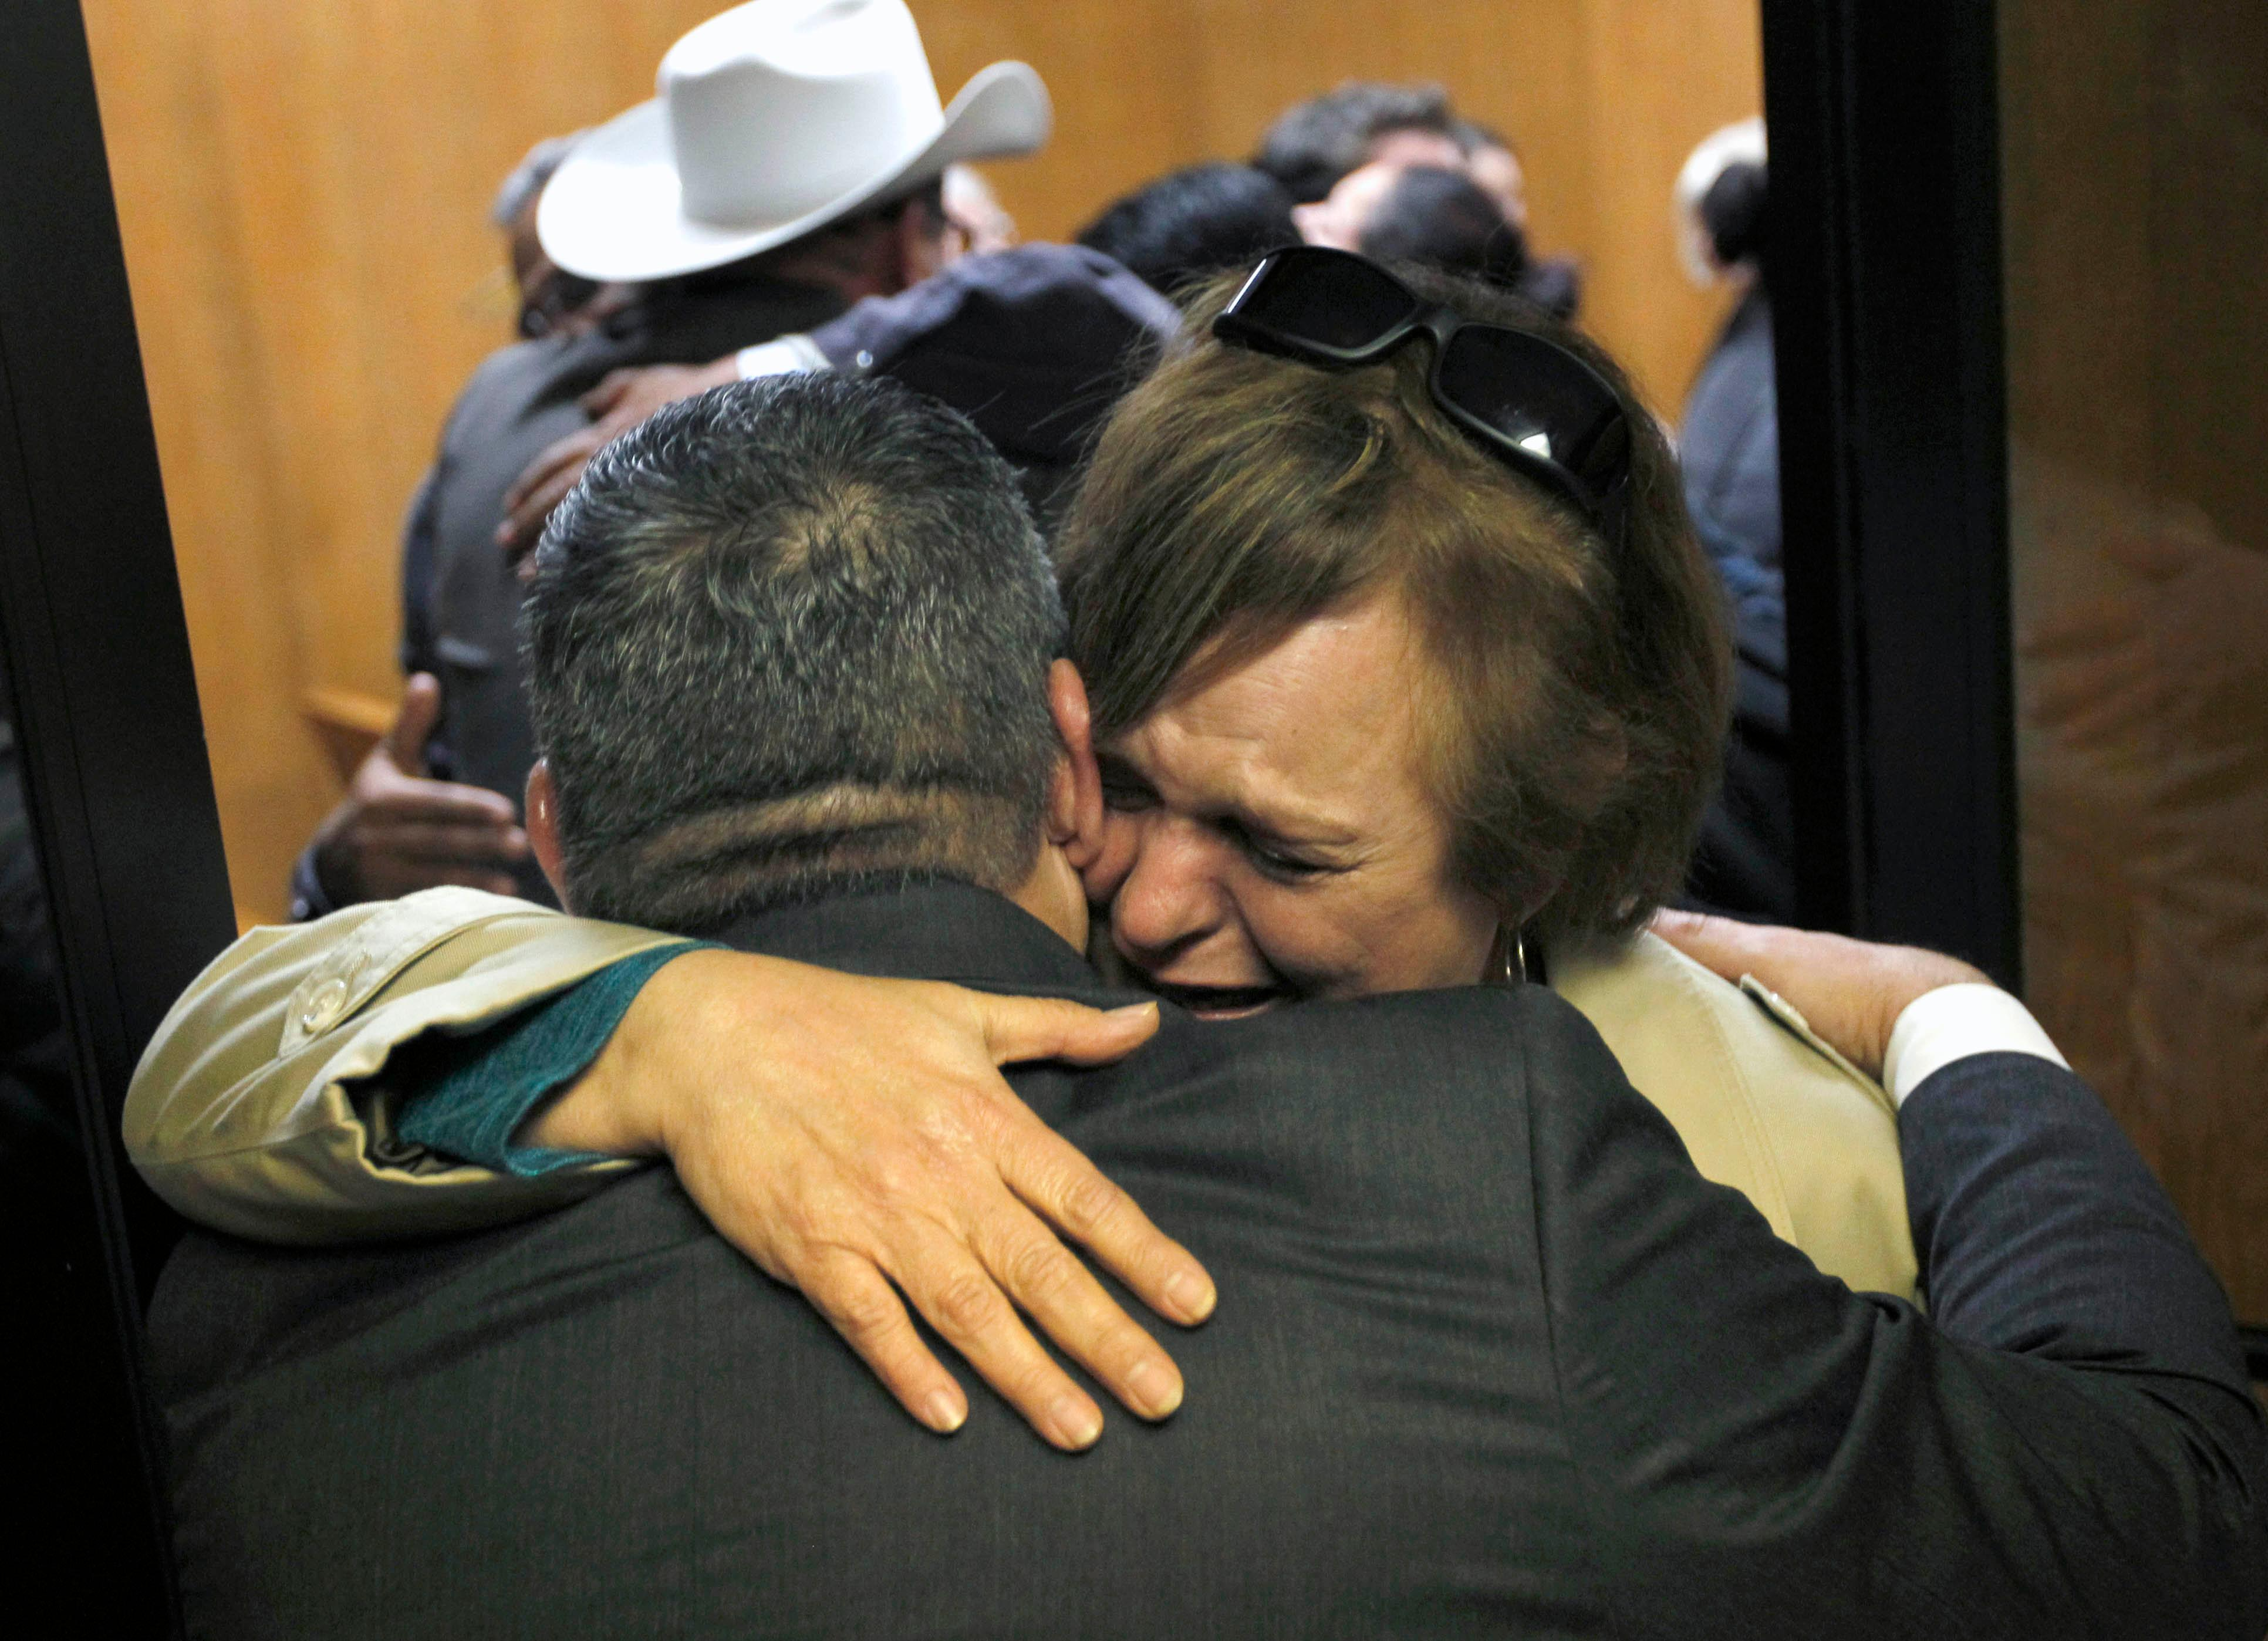 Noemi Sigler hugs Hidalo County Assistant District Attorney Michael Garza following the guilty verdict in John Bernard Feit's trial for the 1960 murder of Irene Garza in the 92nd state District Court Thursday, December 7, 2017, at the Hidalgo County Courthouse in Edinburg. Sigler is a relative of Irene Garza.  (Nathan Lambrecht/The Monitor/Pool)